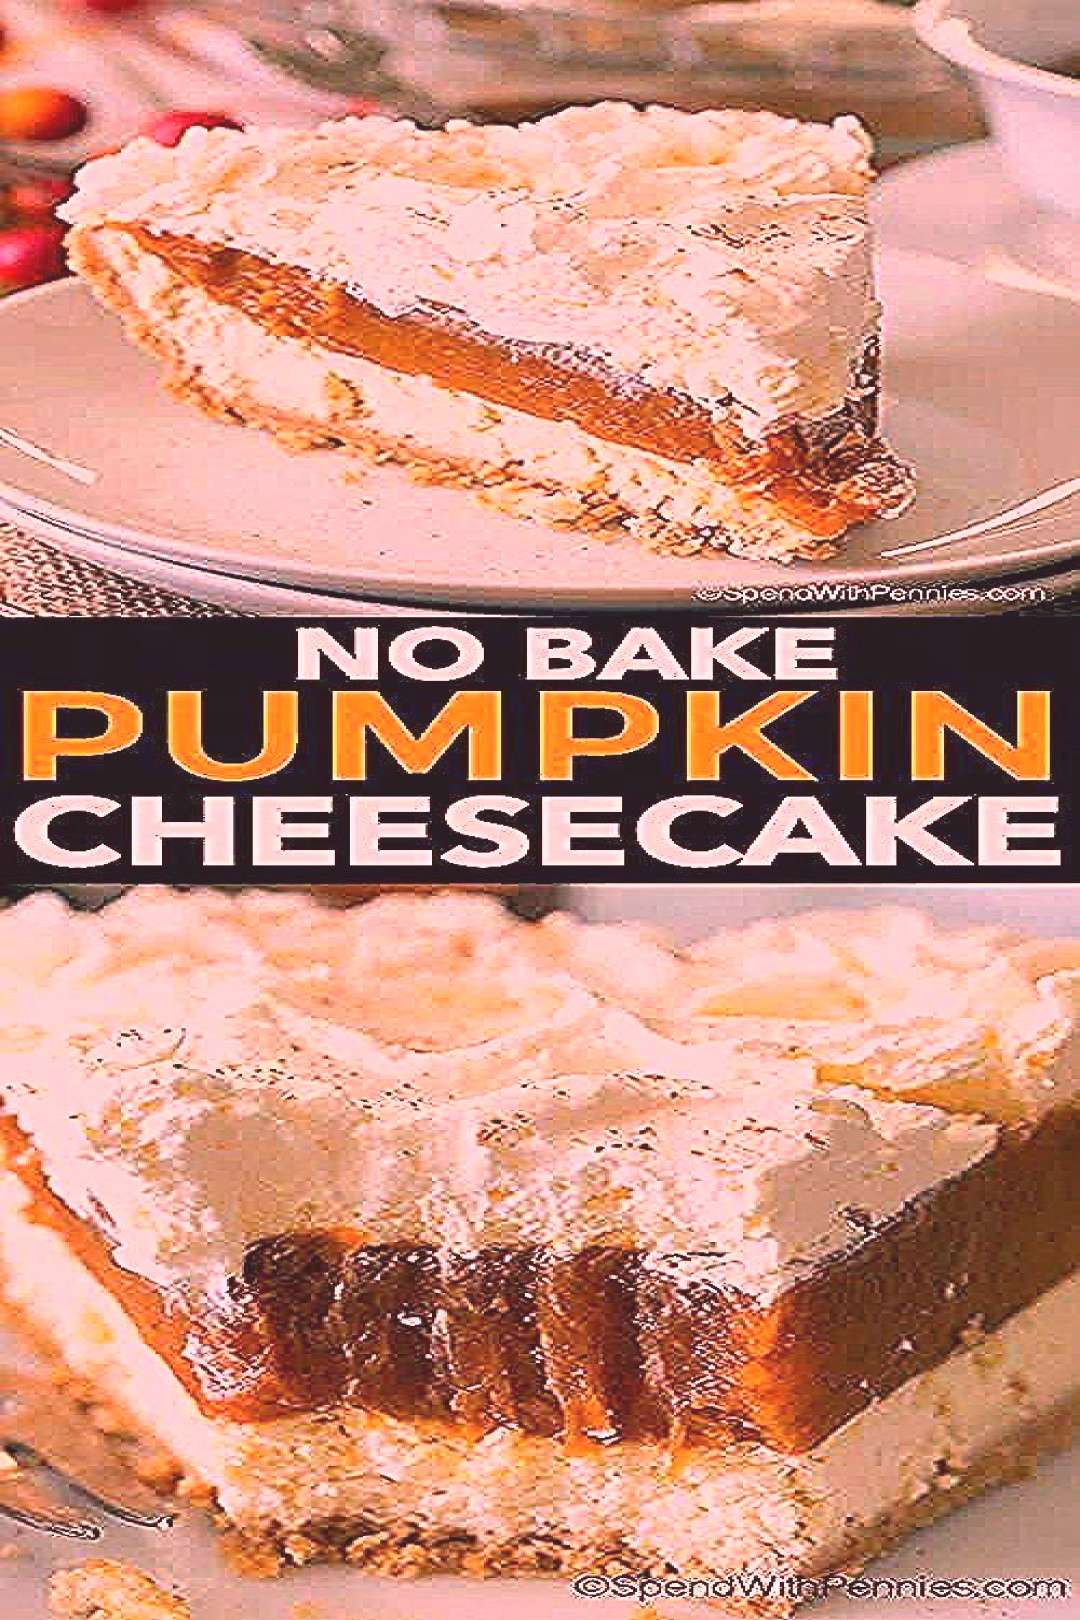 Bake Pumpkin Cheesecake Easy To Make  Spend With Pennies, no... - -